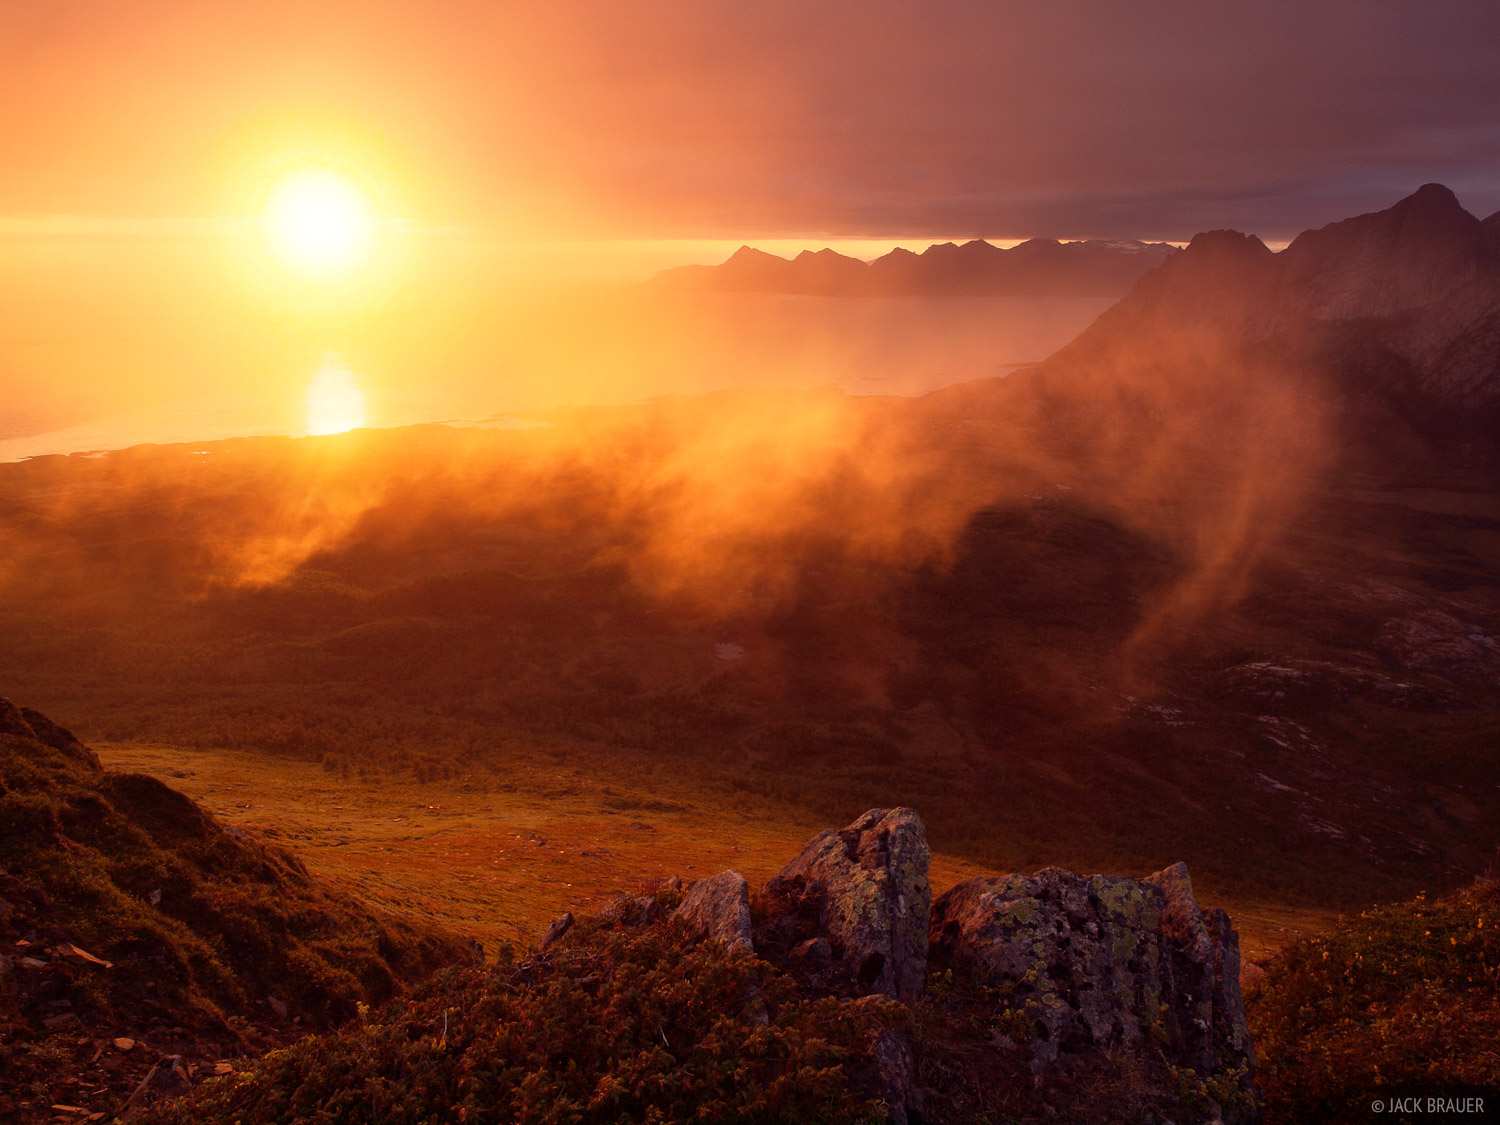 At the end of a dreary overcast day the sun shines a fiery sunset through a gap under the clouds. The famous Strandatindan...